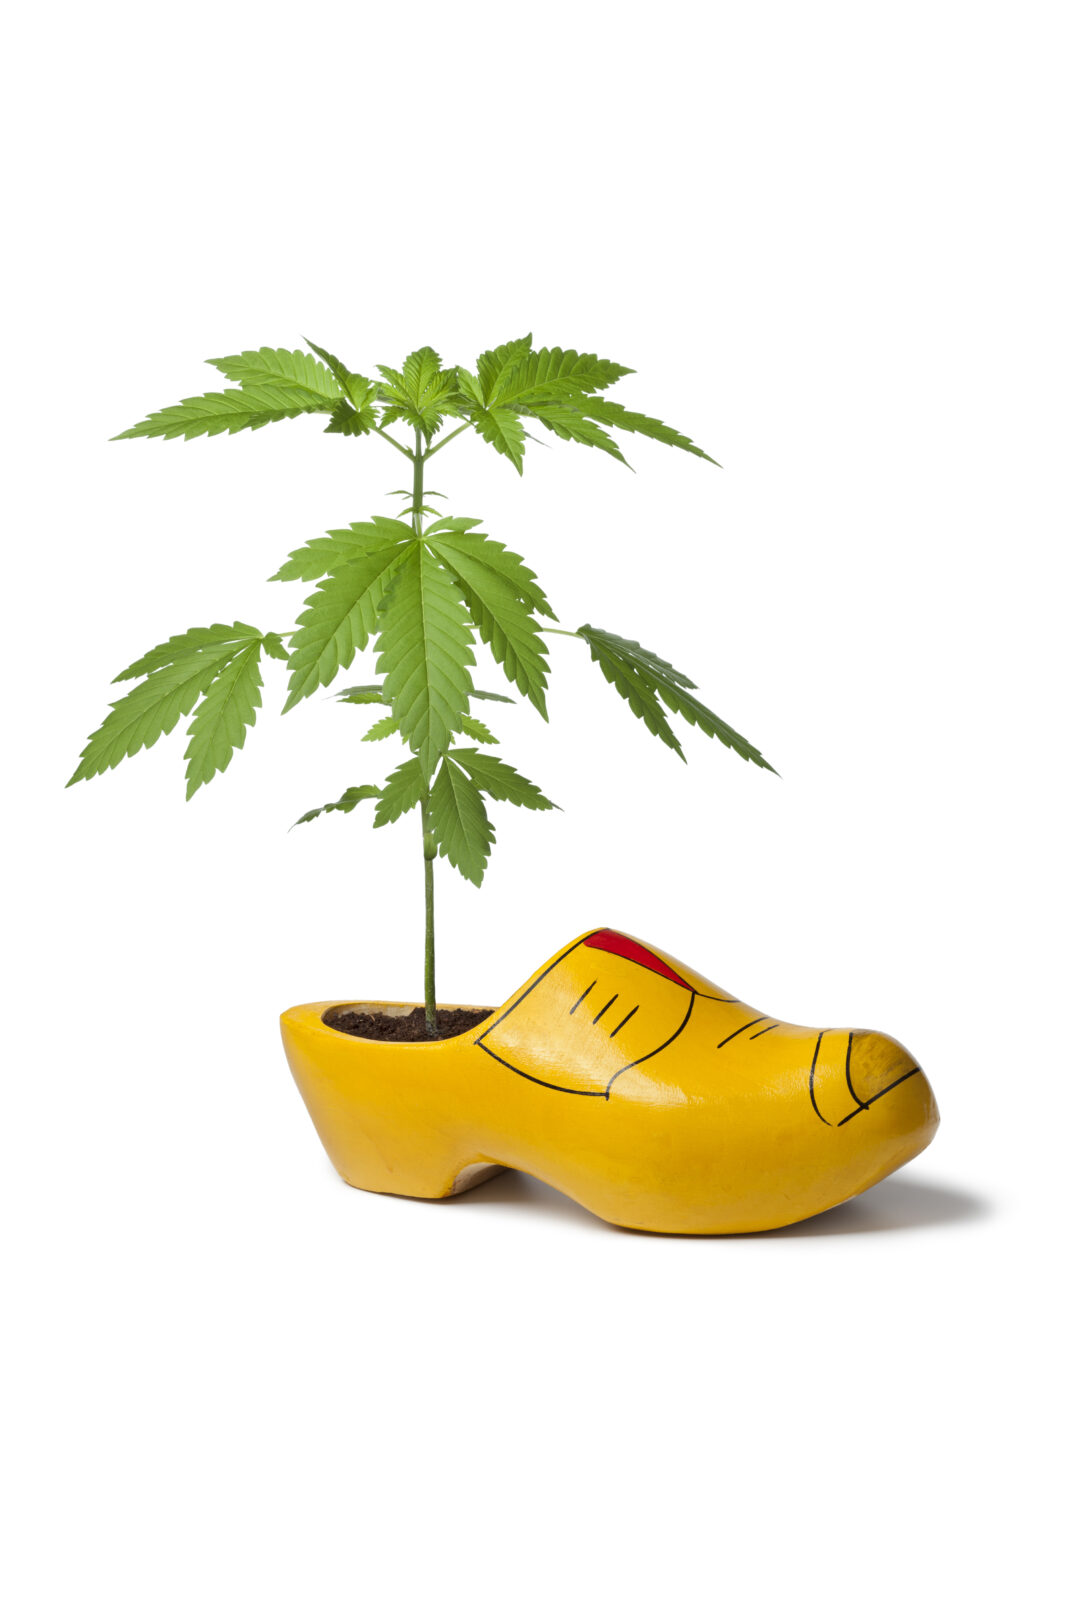 5 Amazing Facts about Cannabis Plants that You Didn't Know ⋆